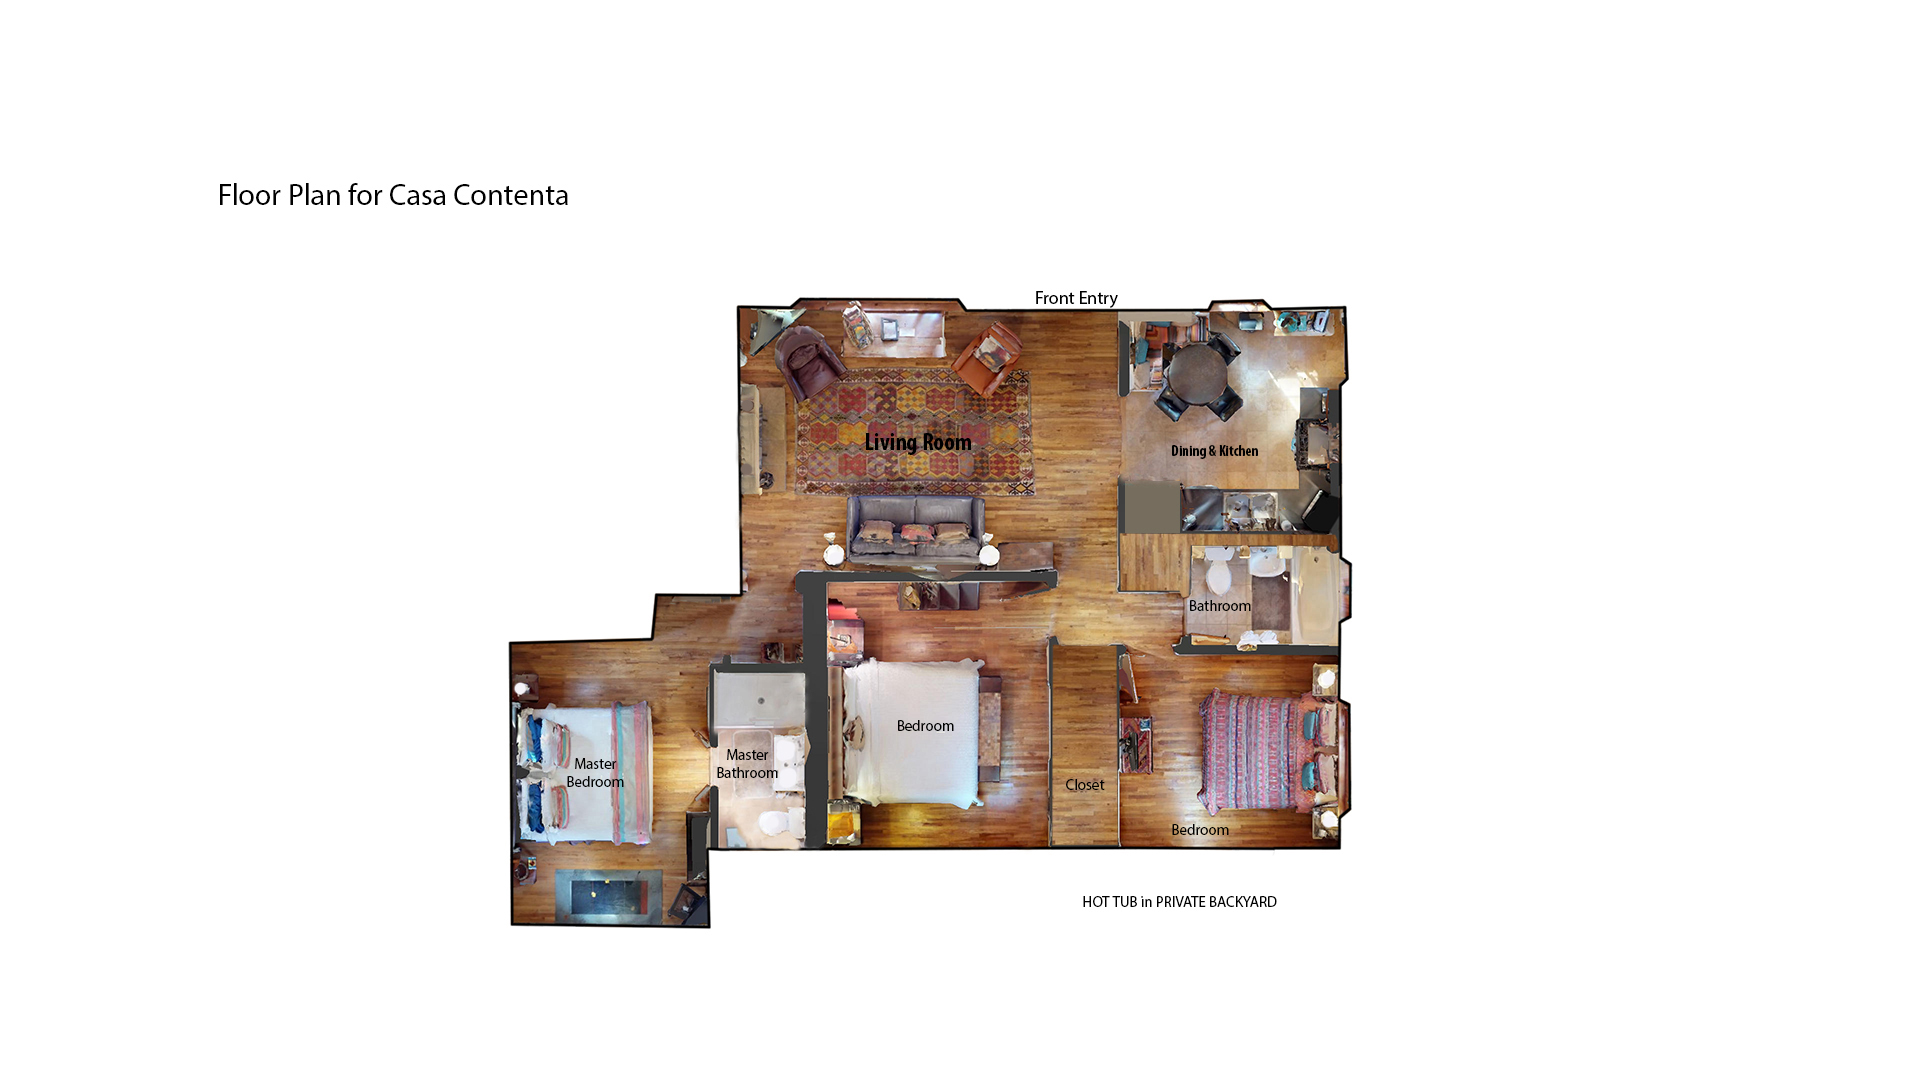 Floor Plan for Casa Contenta